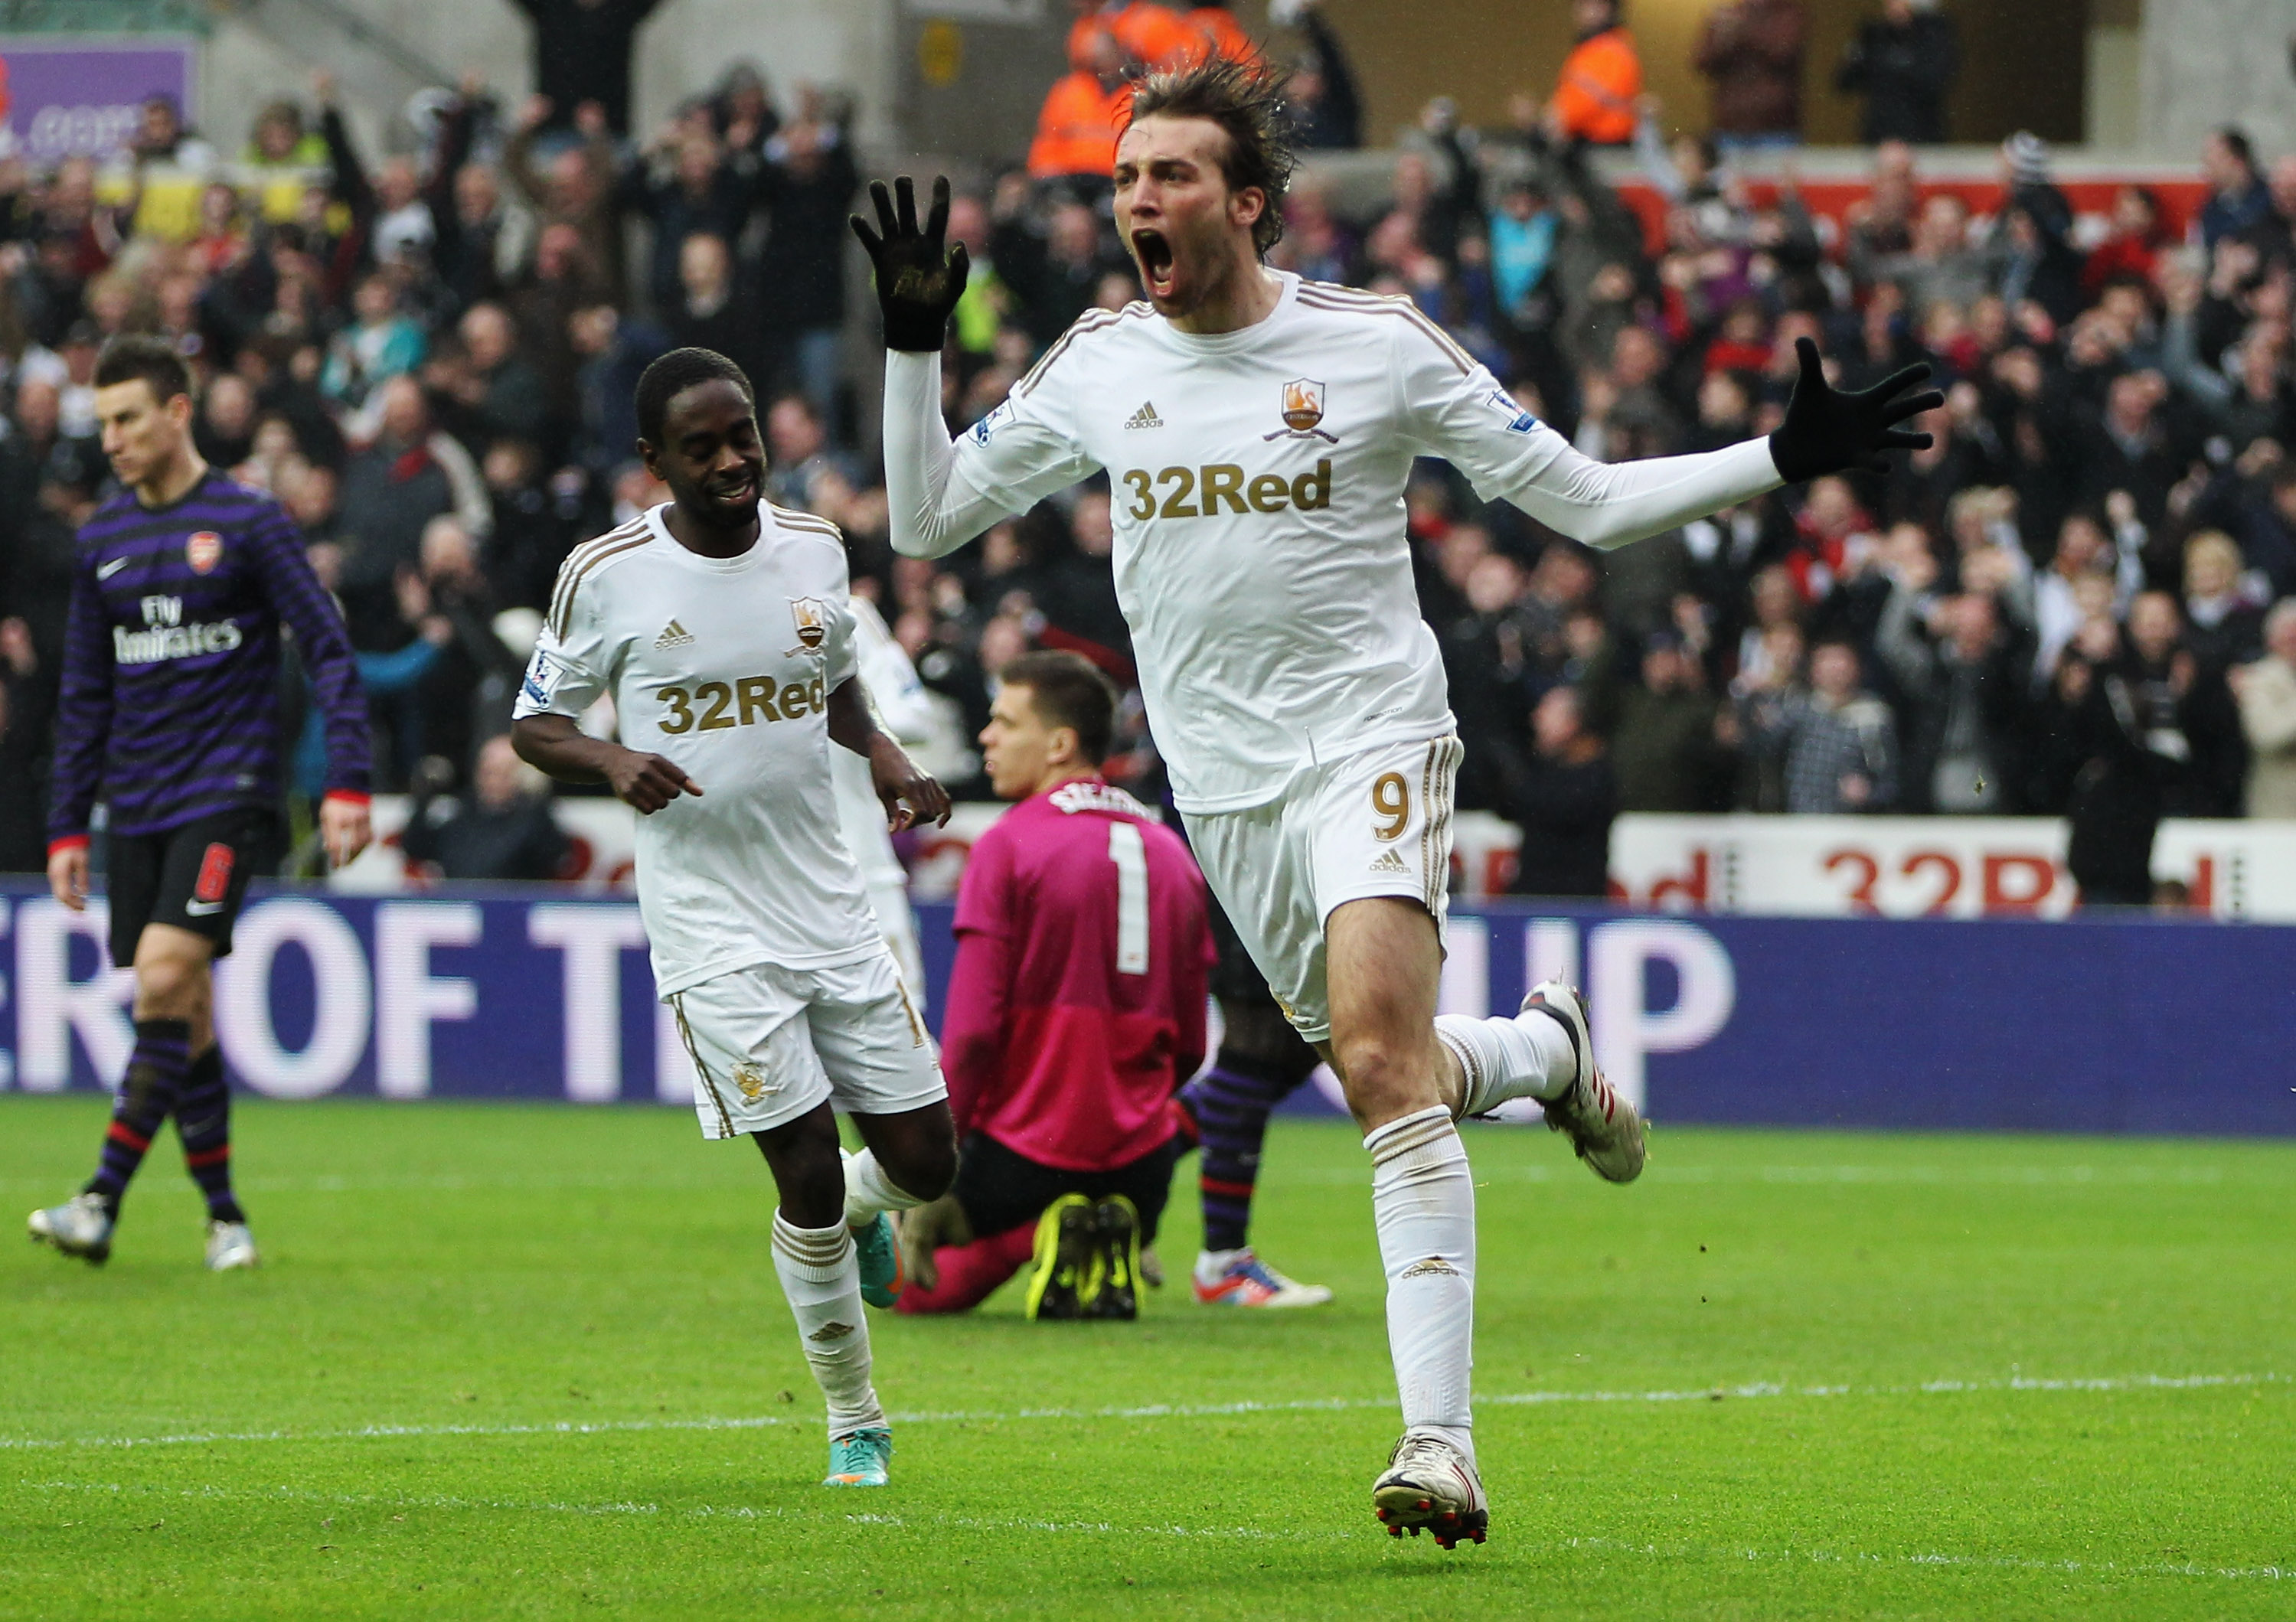 Michu: Ex-Swansea midfielder retires after long injury struggle